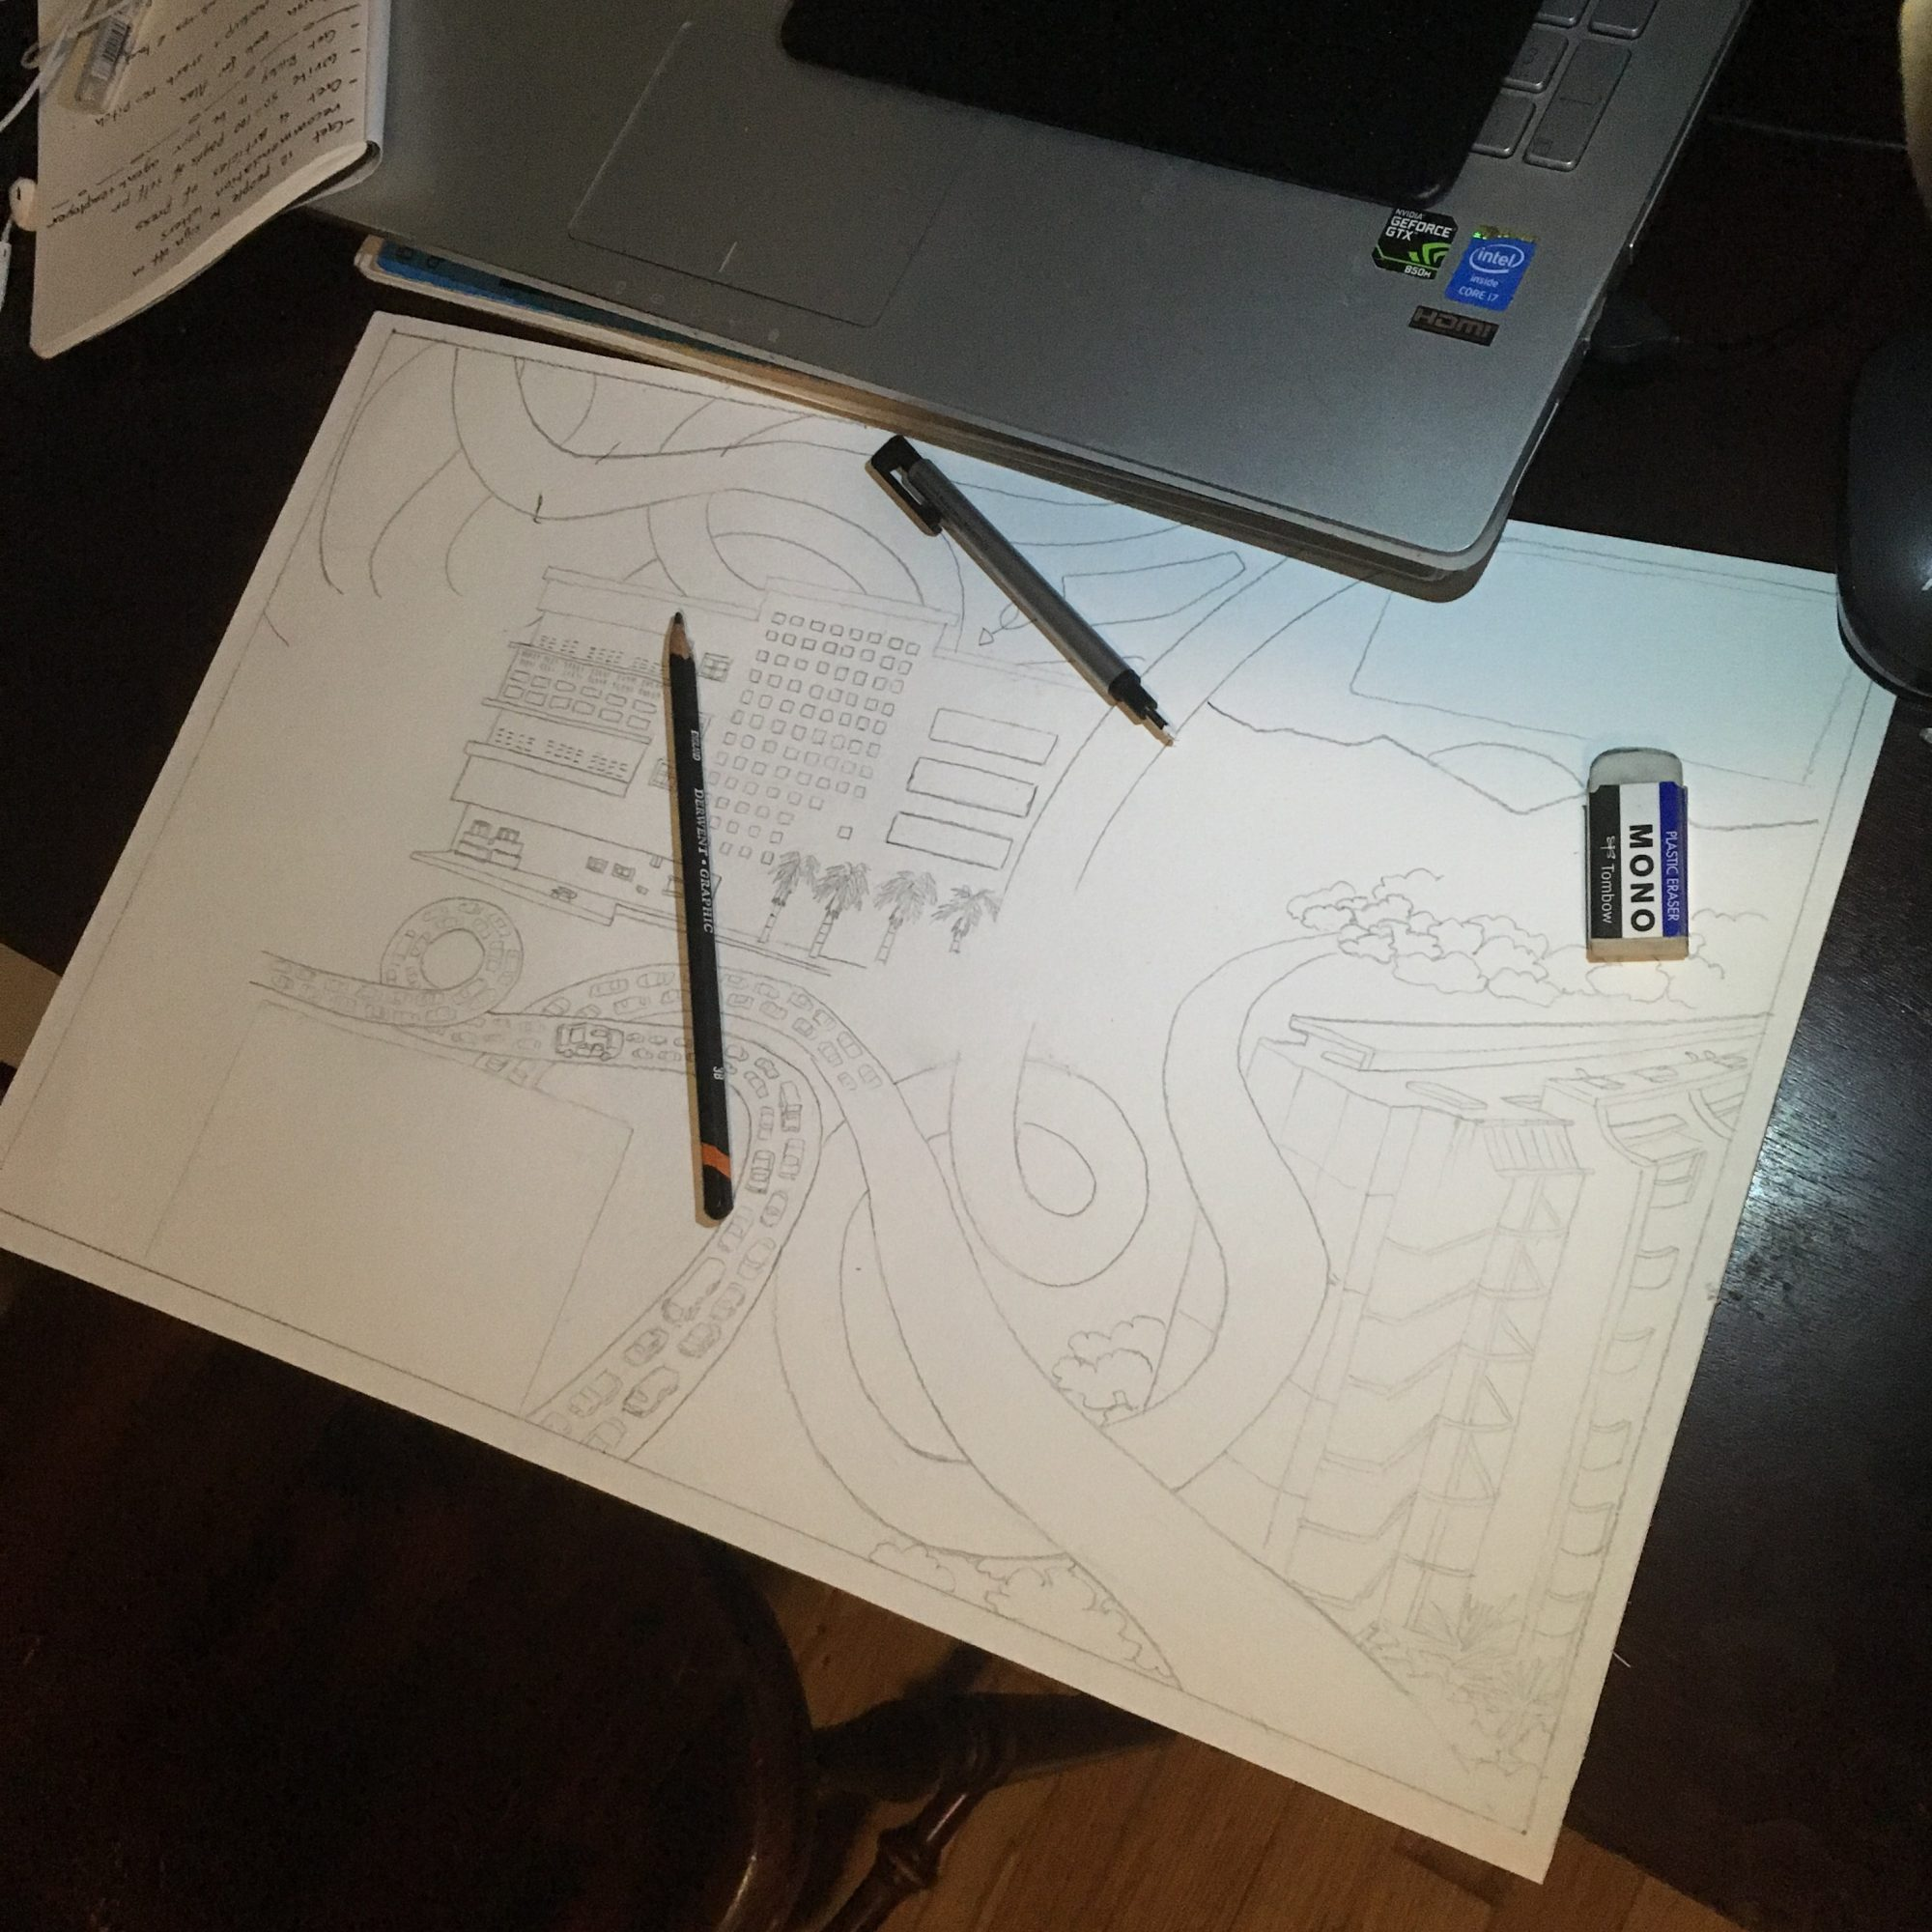 Photograph of an in progress drawing of a city.